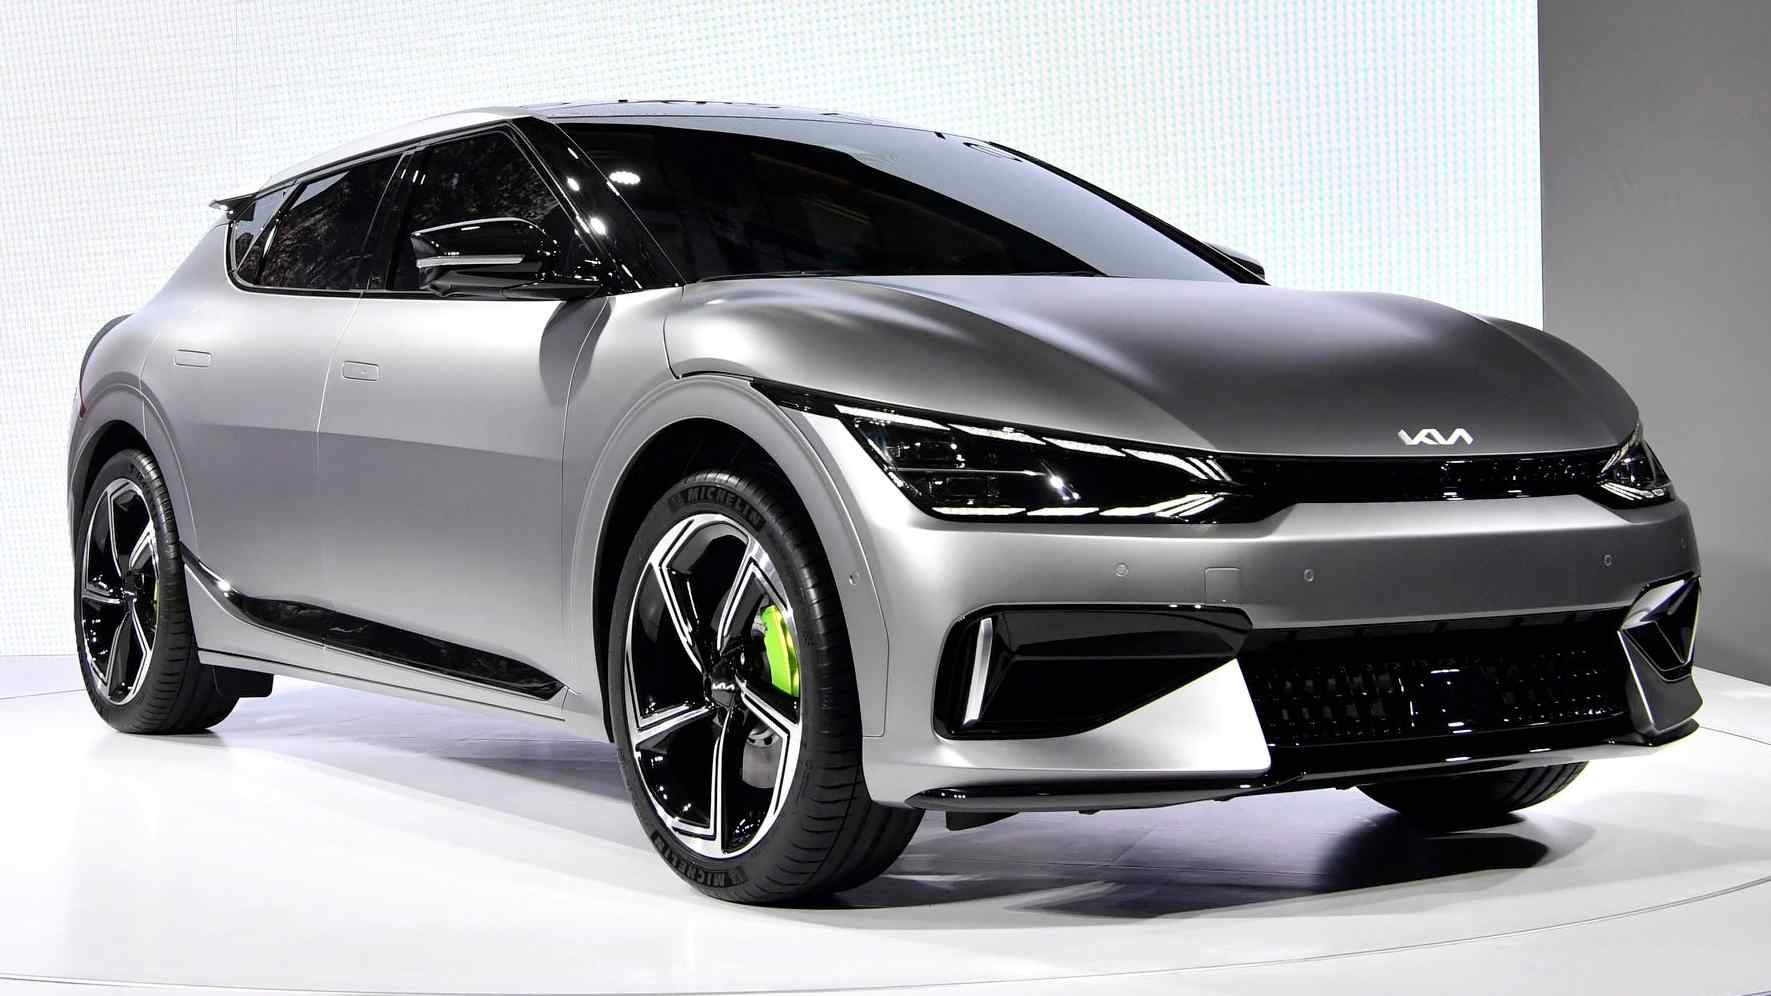 Kia EV6 GT electric crossover packs 585 hp, 0-100 kph time of 3.5 seconds and 260 kph top speed- Technology News, Gadgetclock